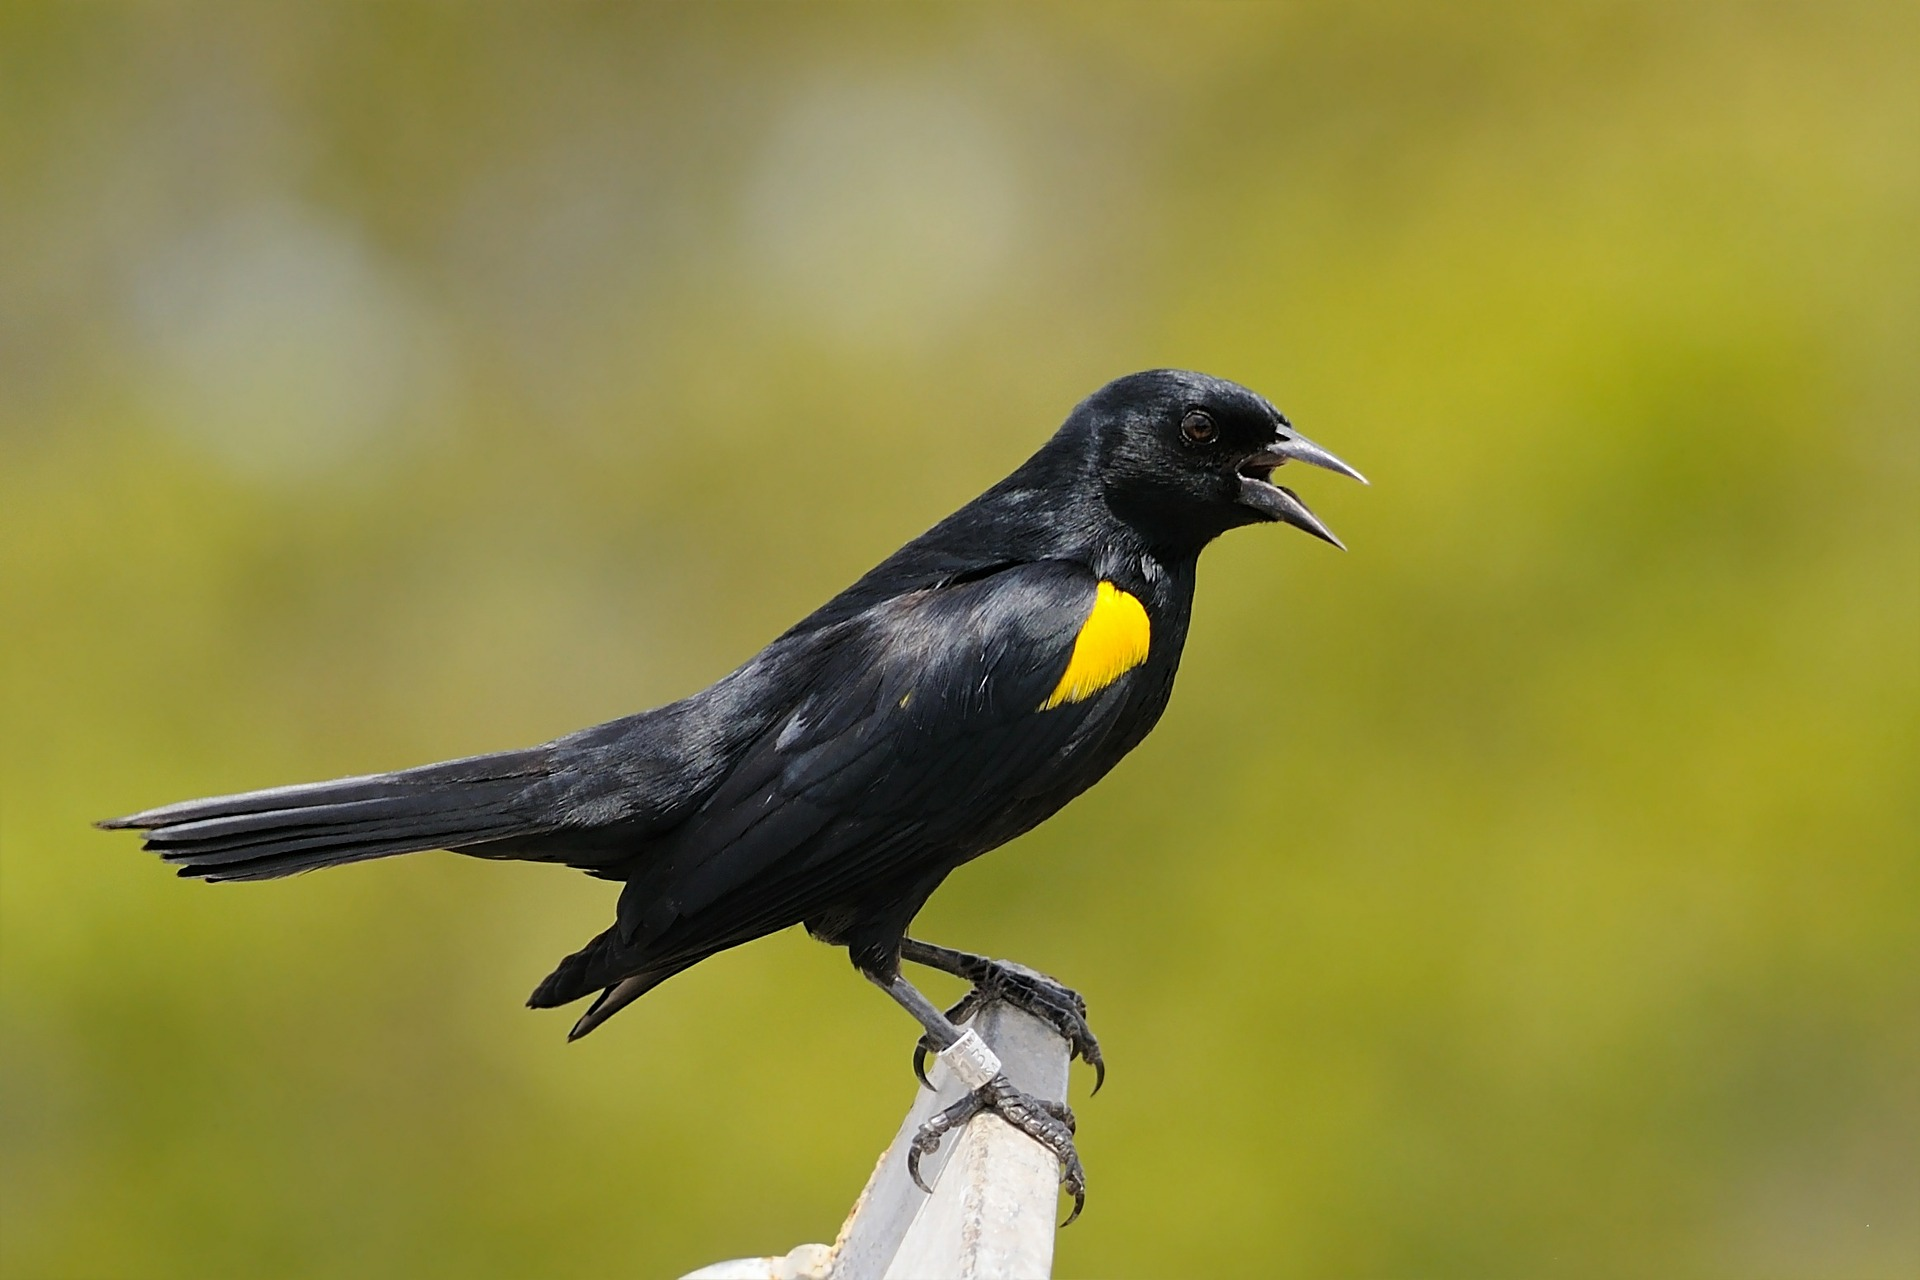 yellow-shouldered-blackbird-541343_1920